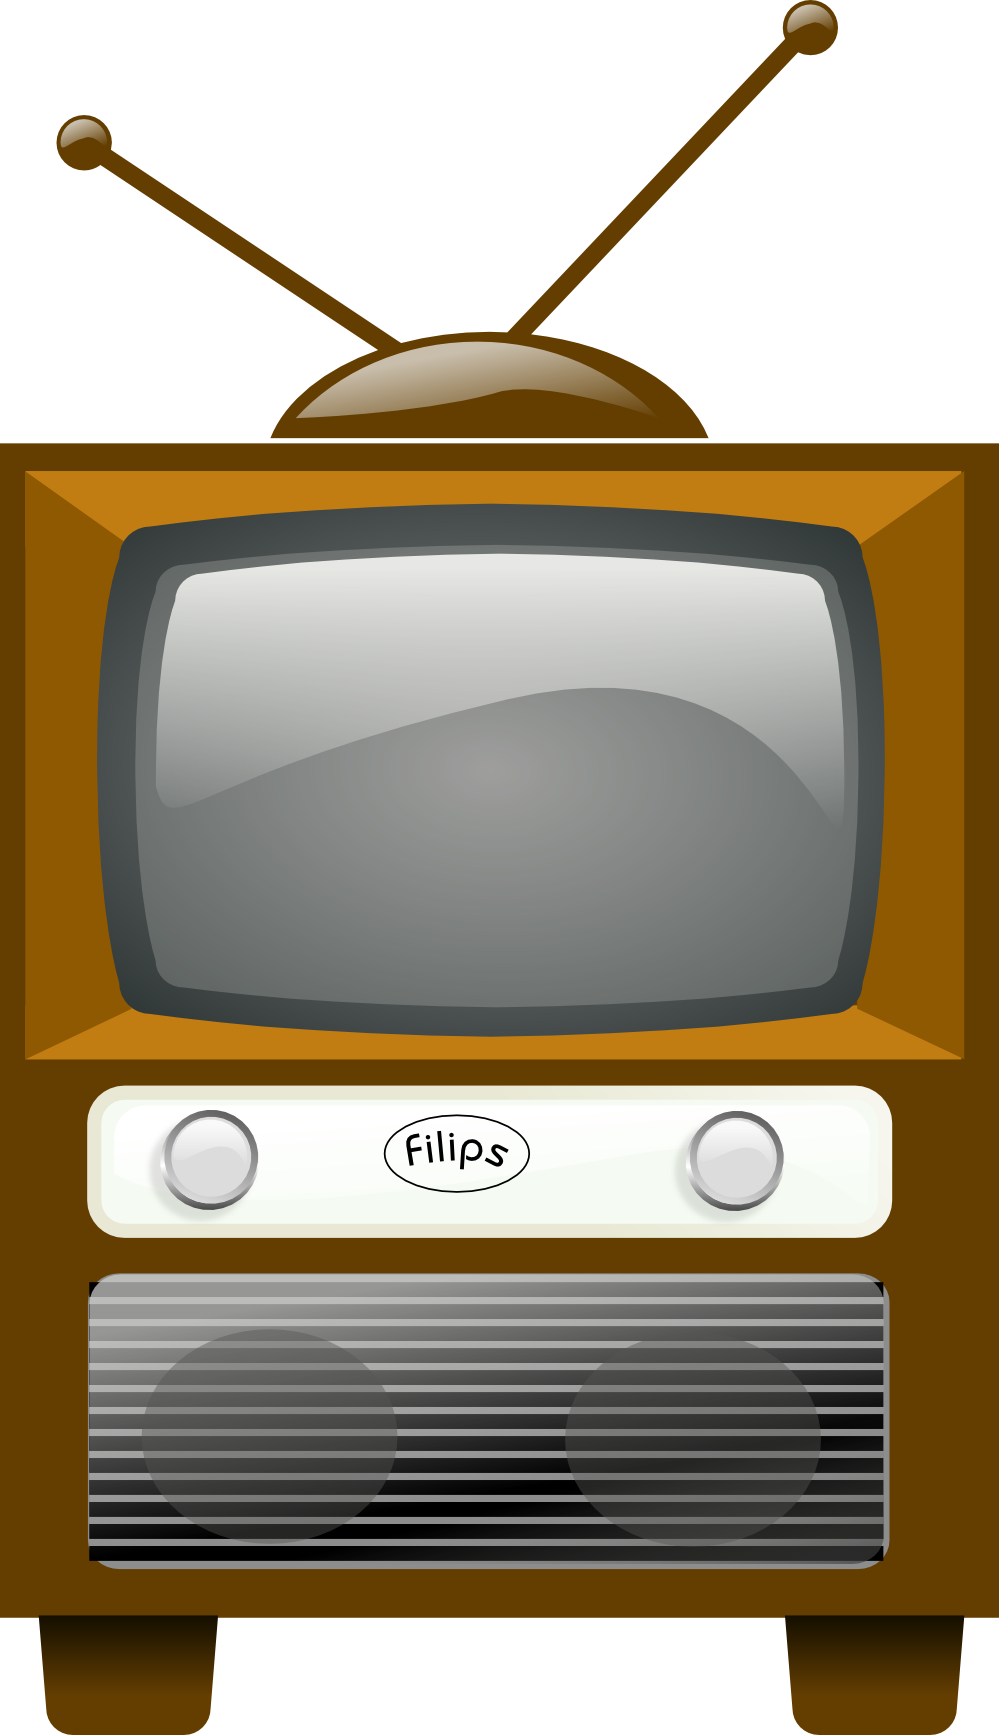 Television clipart vintage tv, Picture #2120392 television.